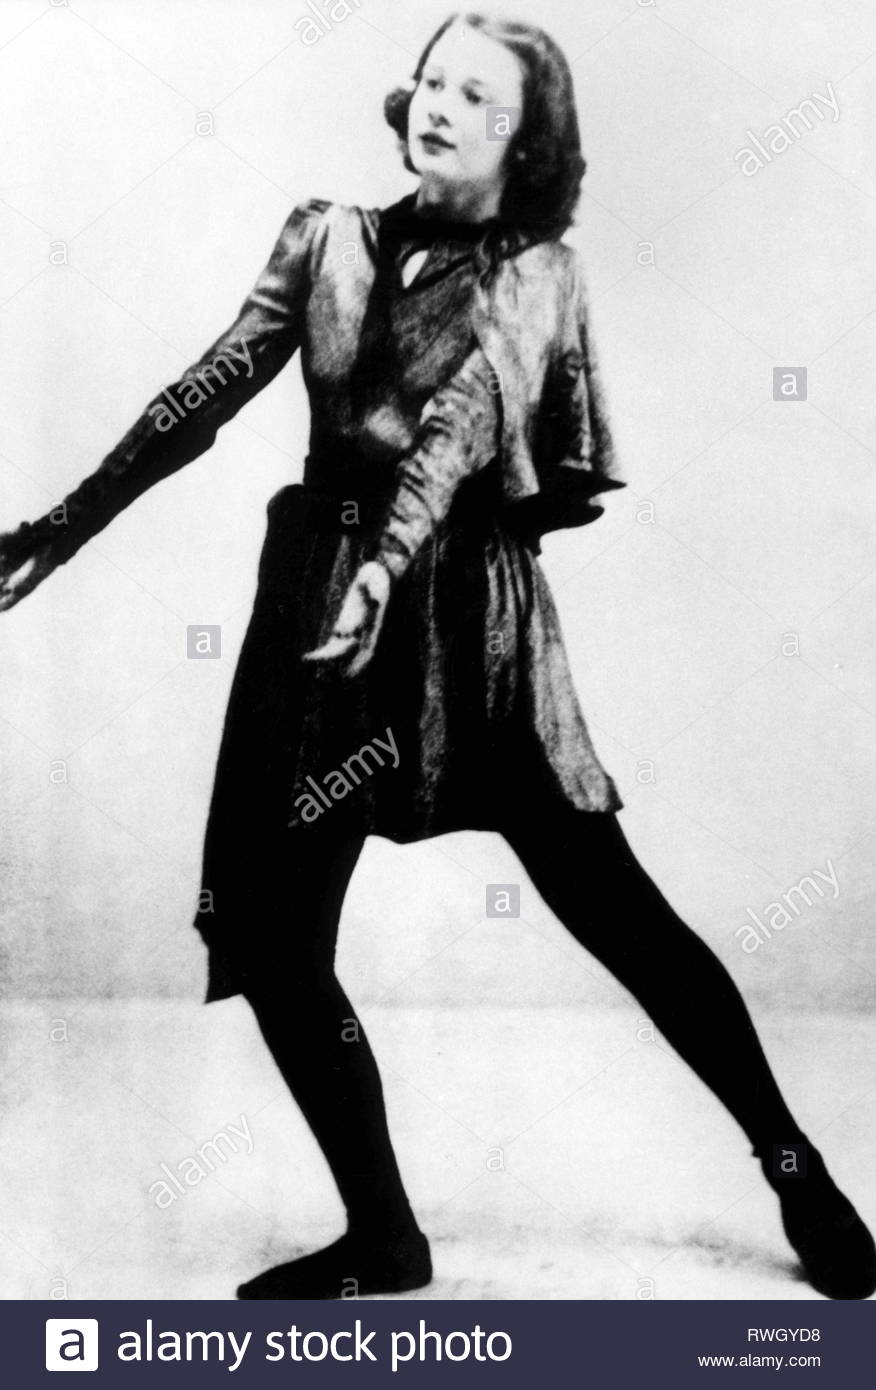 Hepburn, Audrey, 4.5.1929 - 20 1.1993, British actress, full-length, as drama student, 1940s, Additional-Rights-Clearance-Info-Not-Available - Stock Image